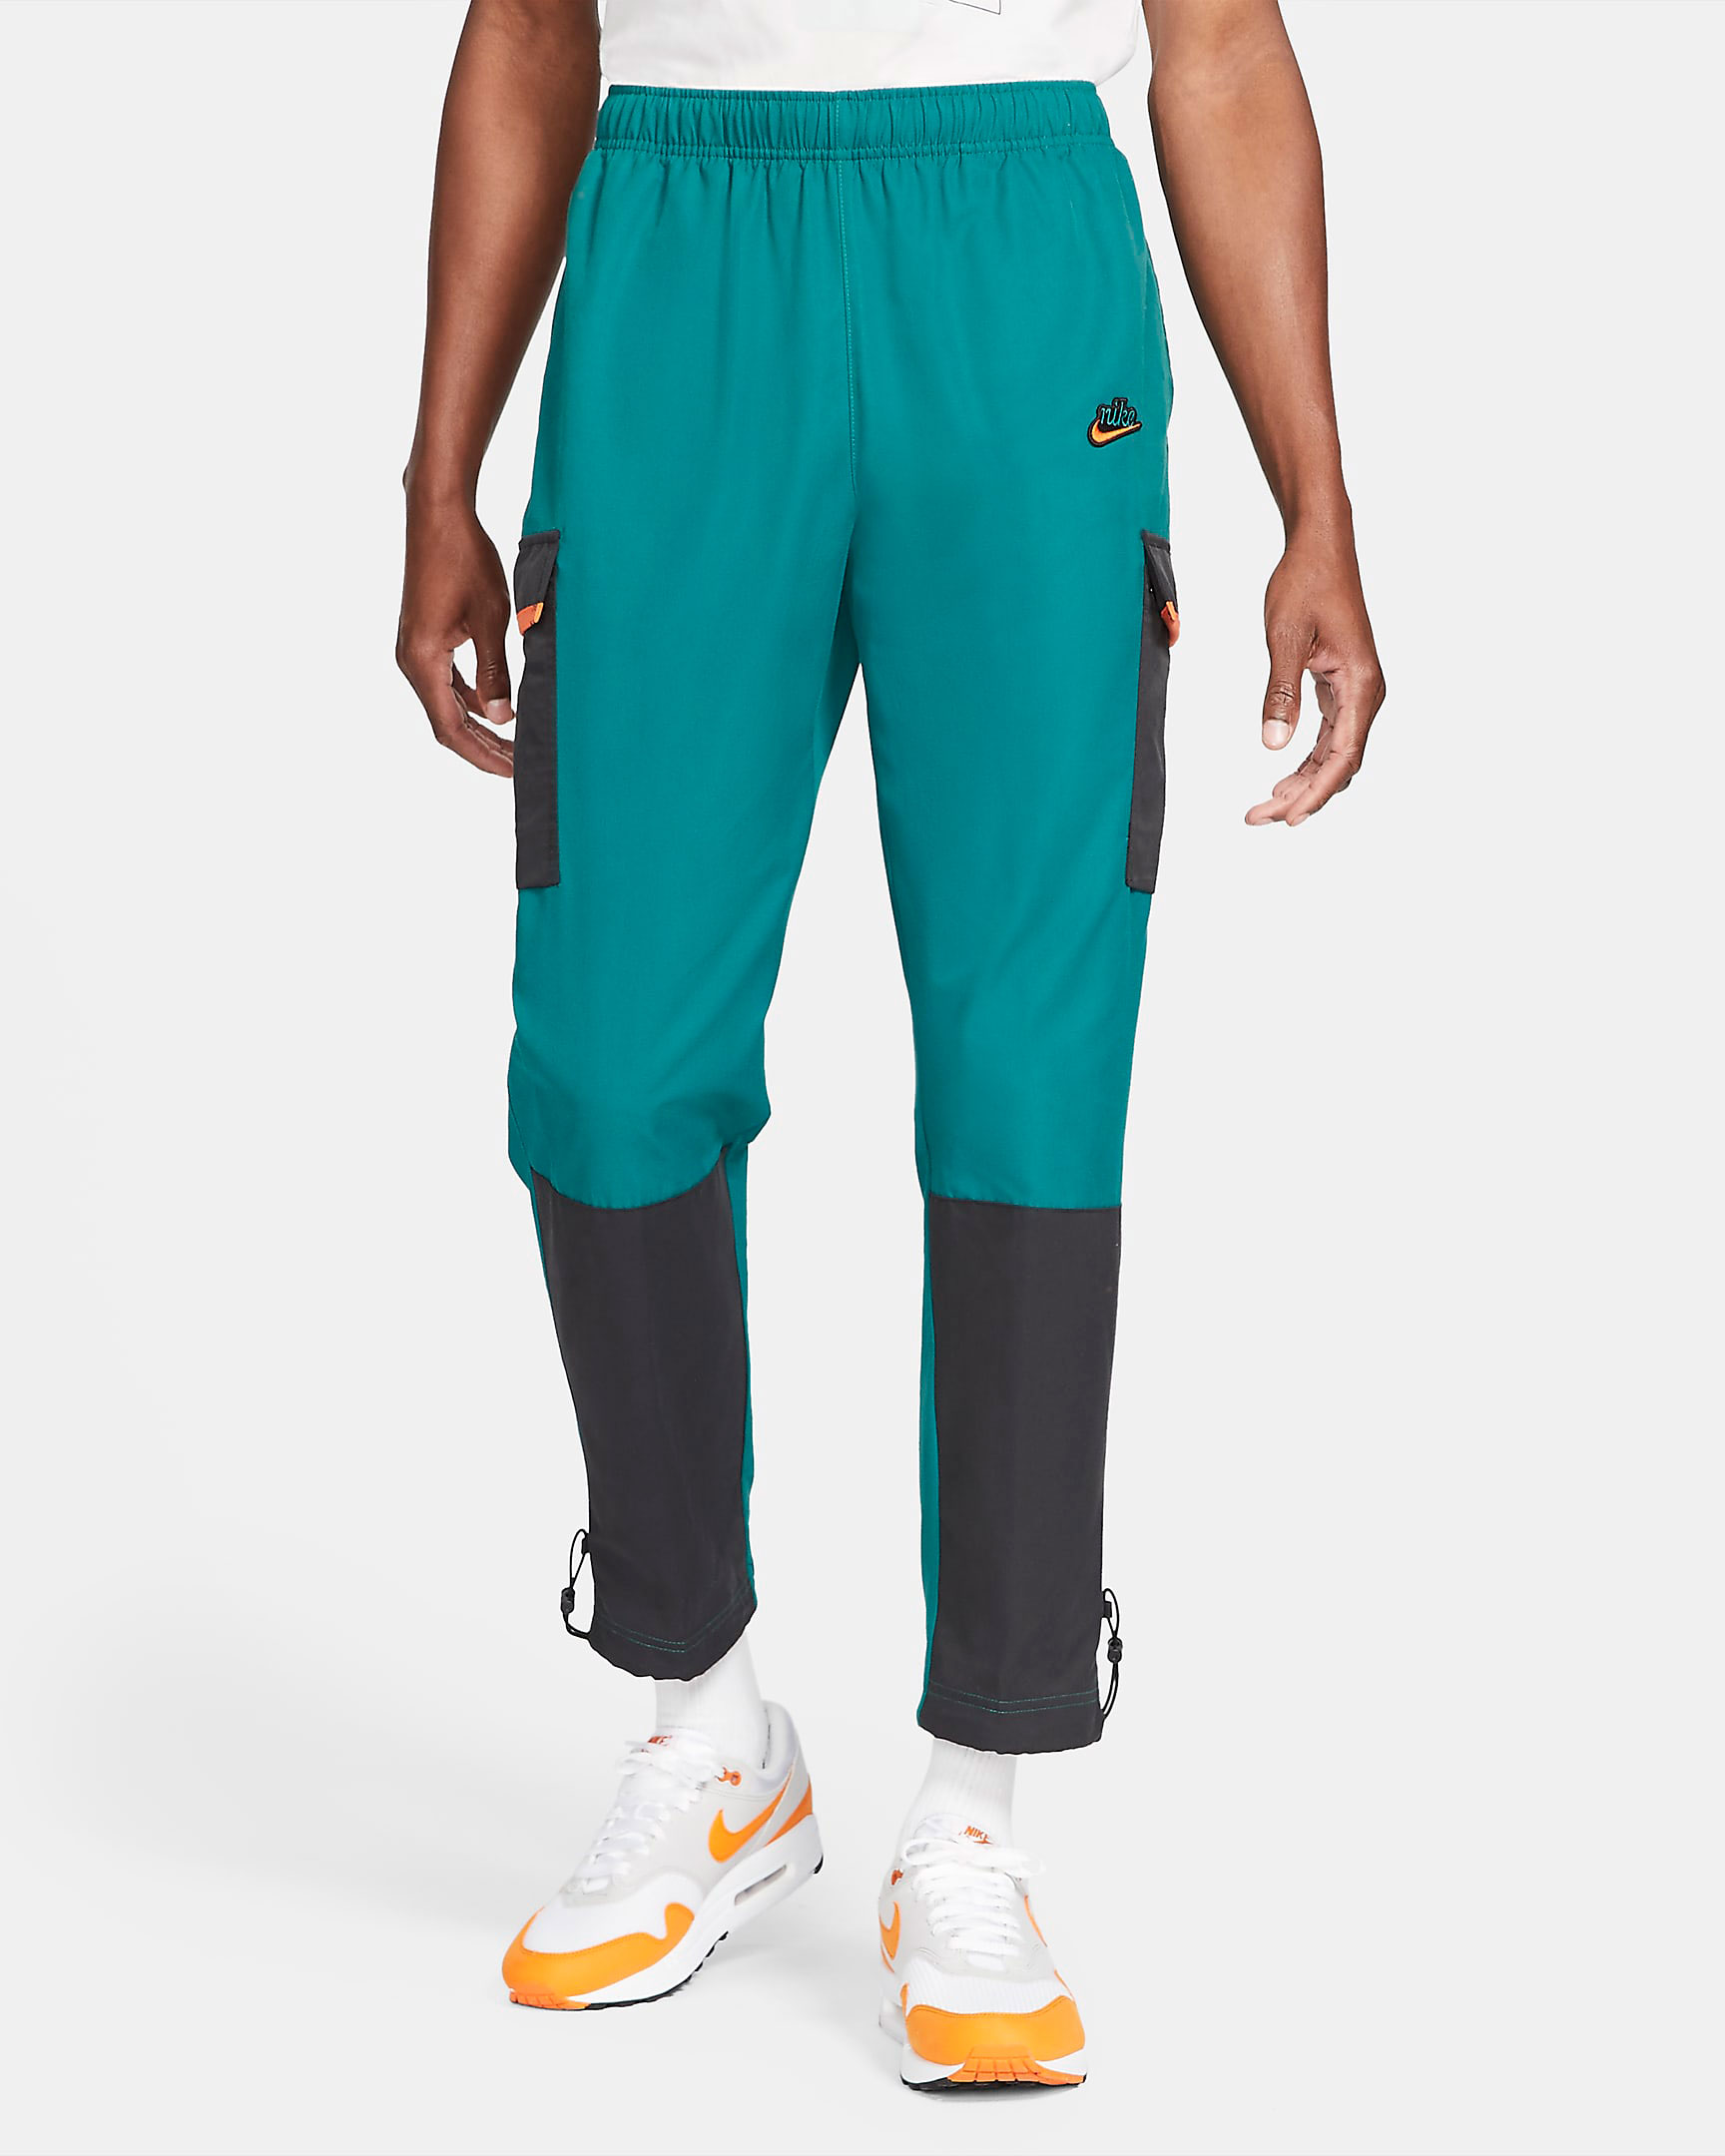 nike-air-griffey-max-1-freshwater-2021-pants-match-1